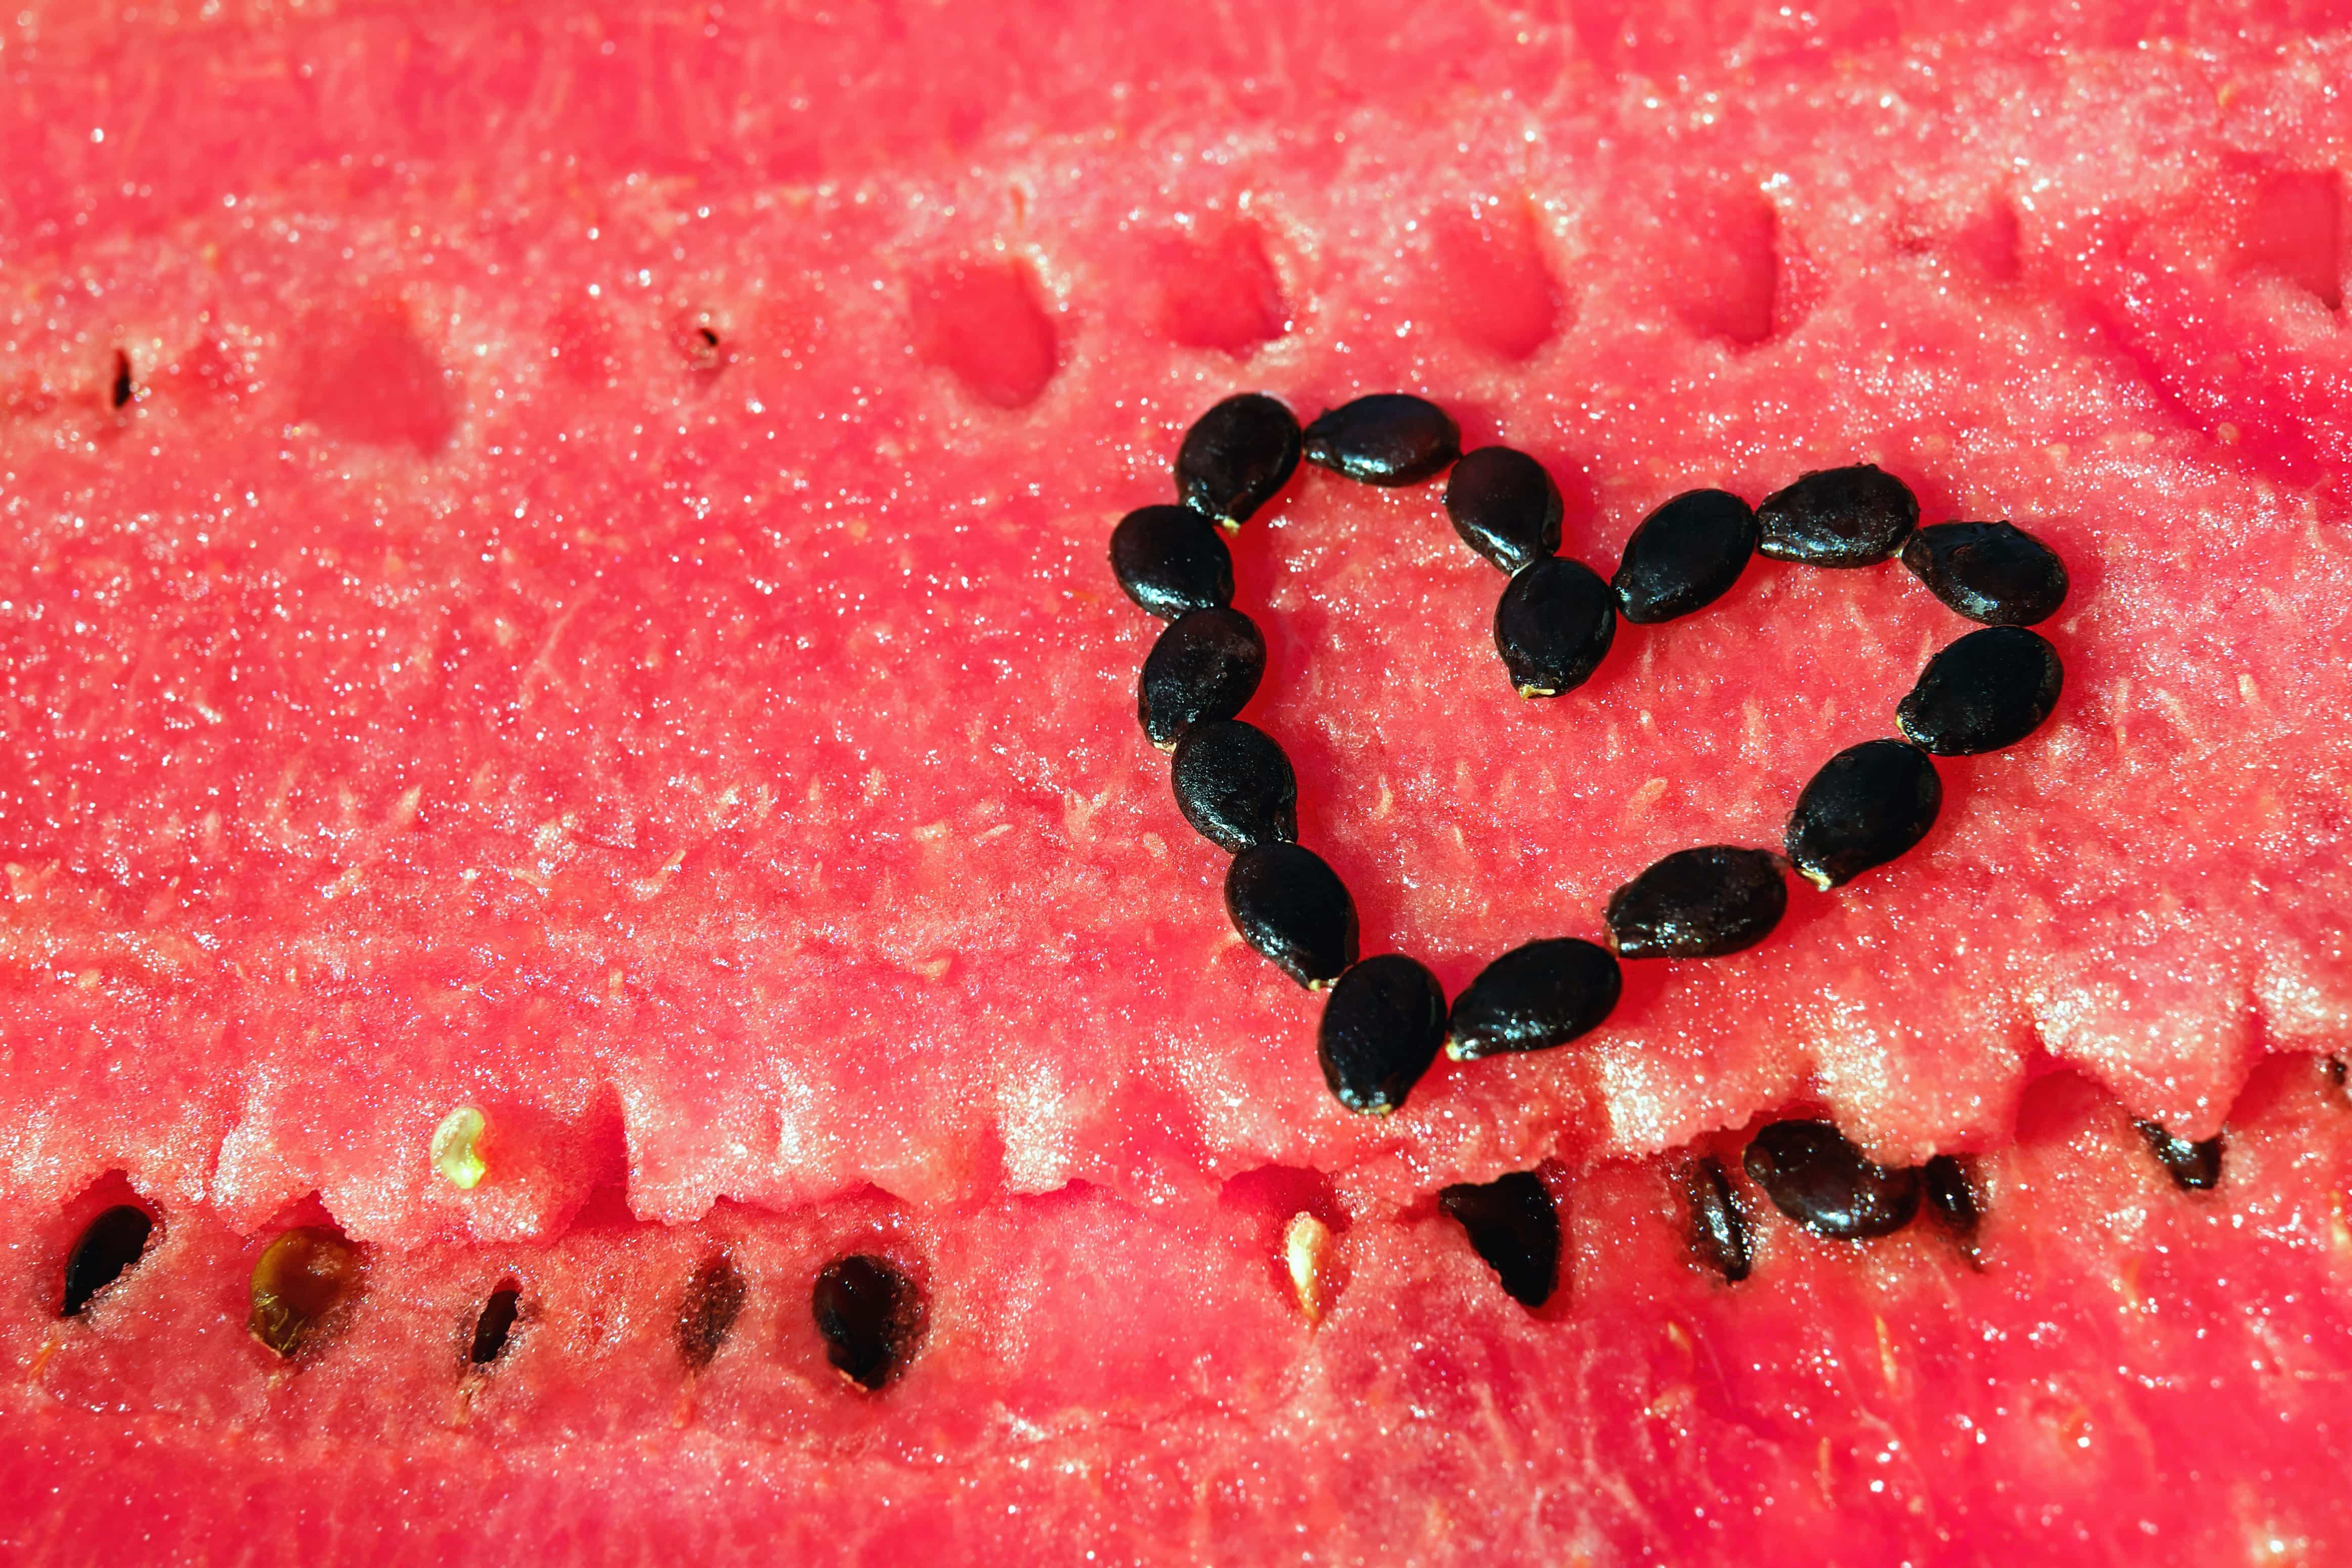 Free Picture Watermelon Seed Fruit Food Slice Melon